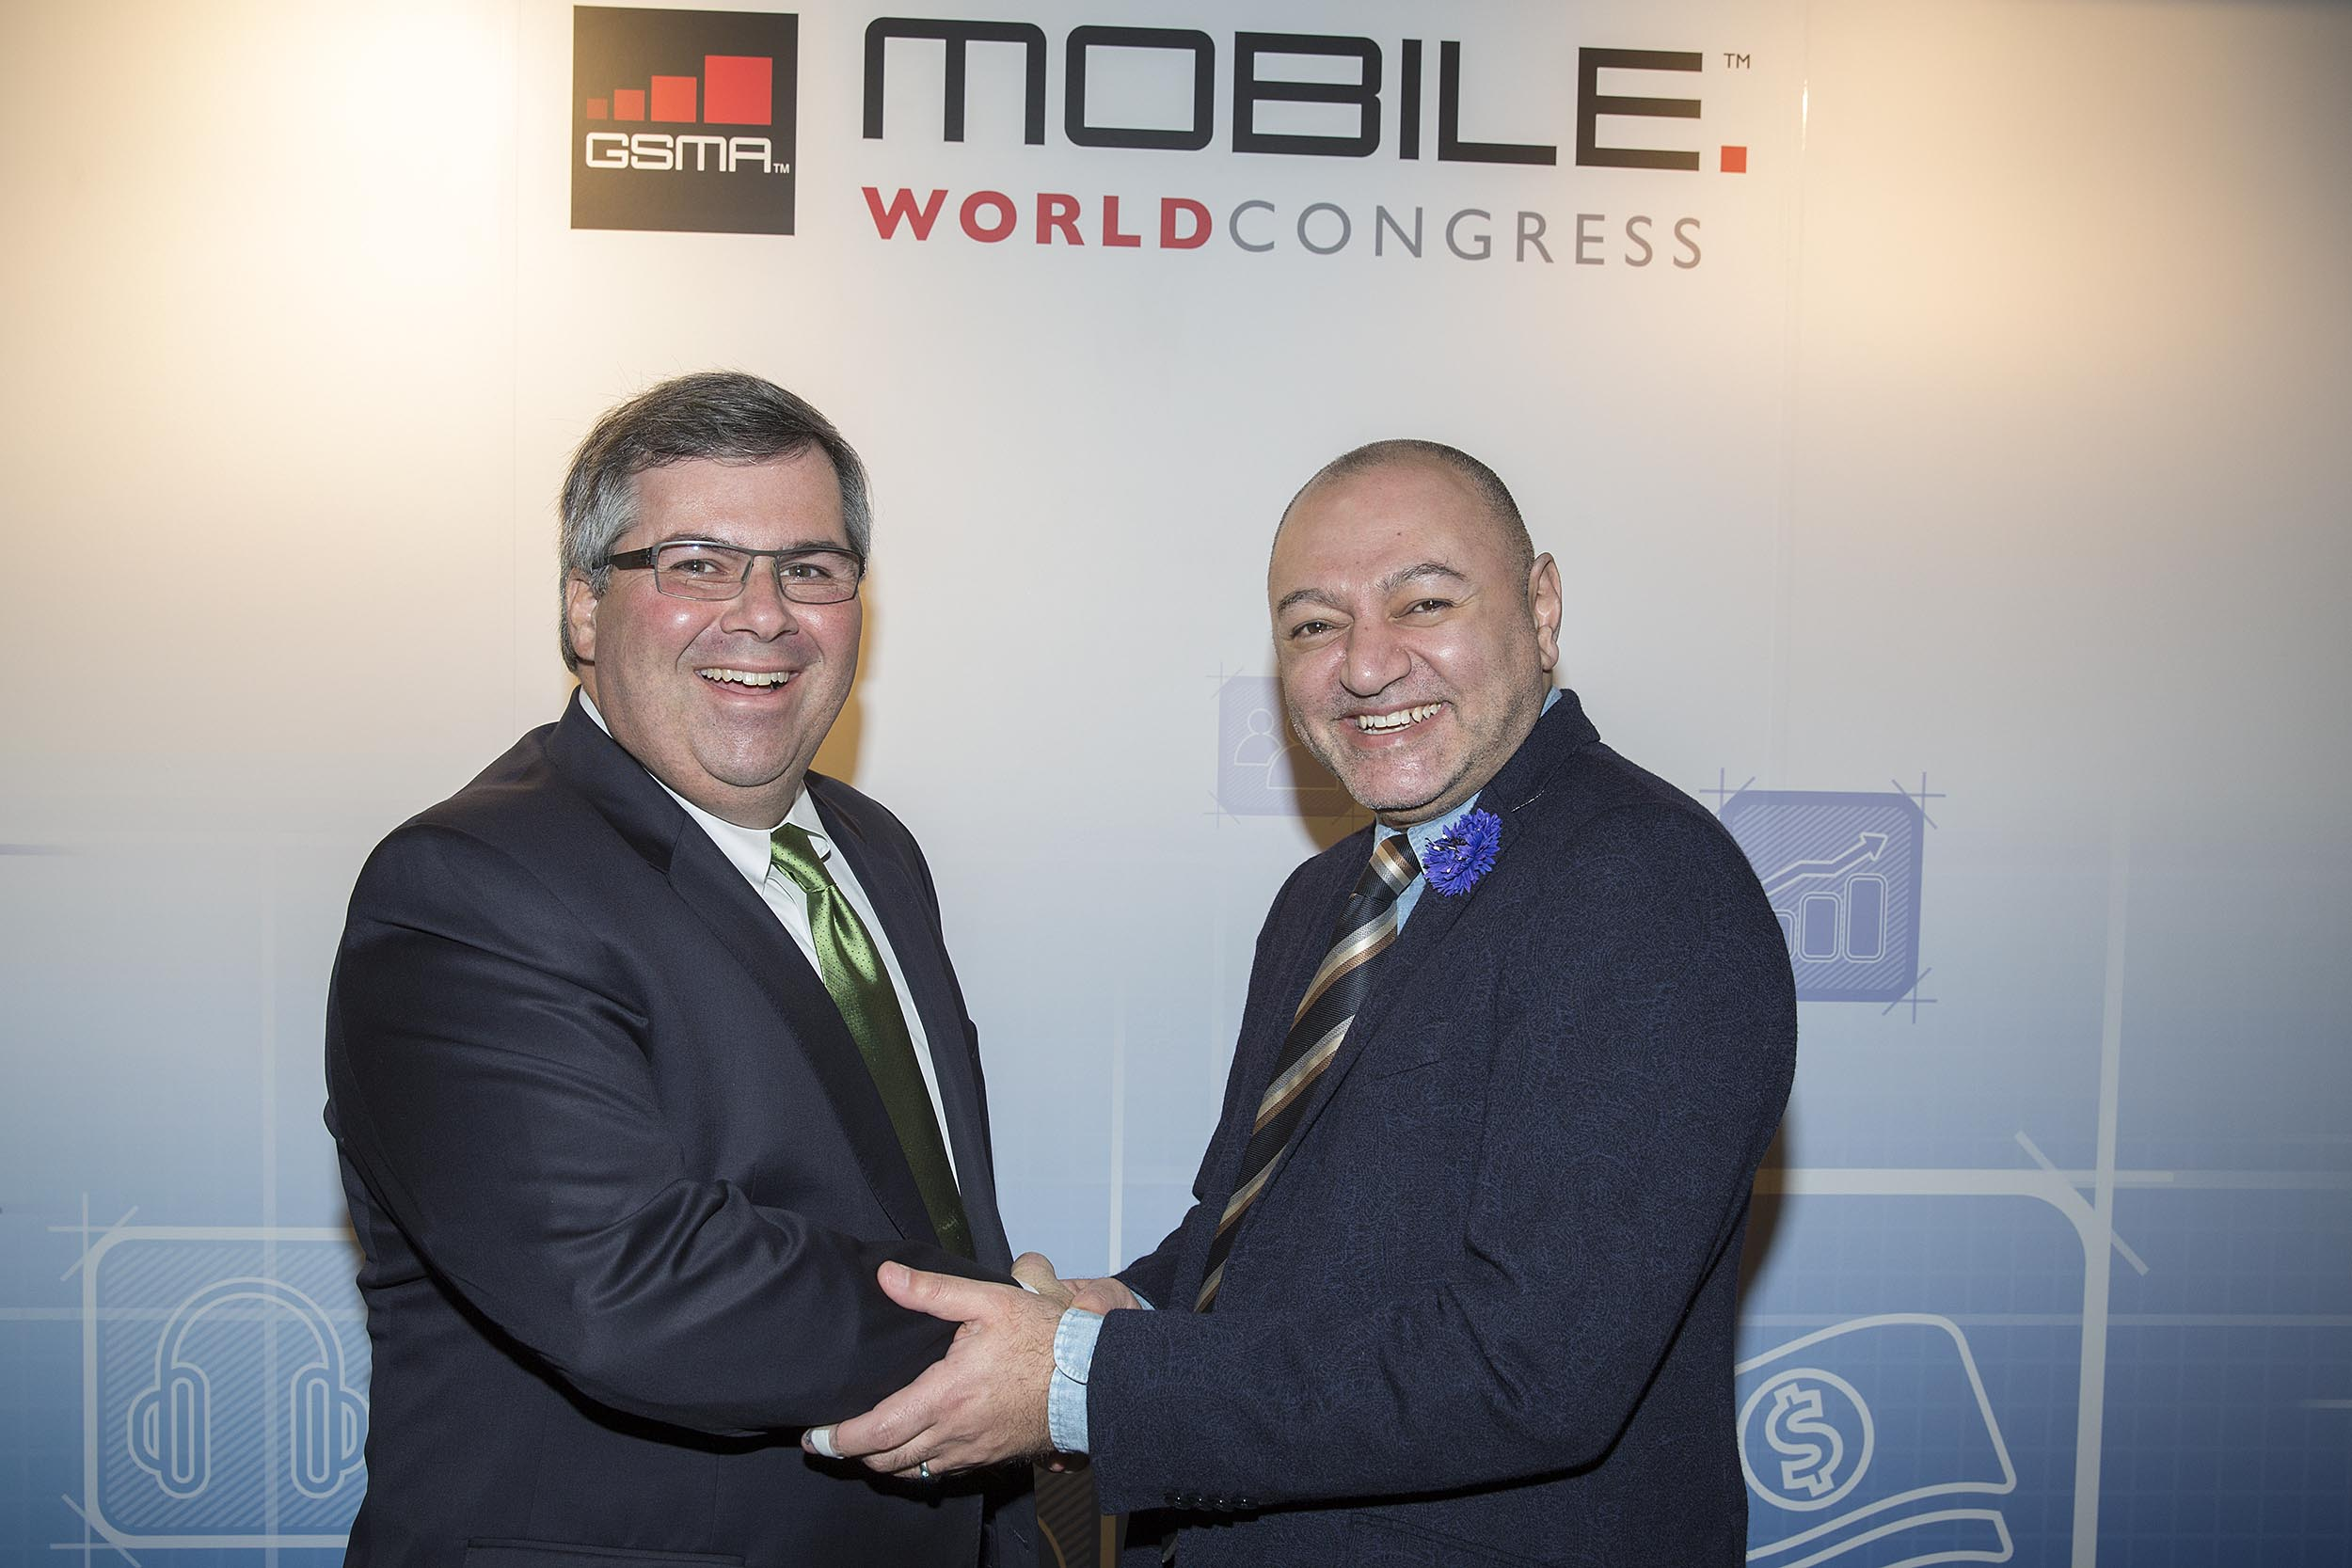 Hany Fam, President Global Strategic Alliances, MasterCard, and Joe DiFonzo, CTO, Syniverse, announced a global collaboration of their two companies at Mobile World Congress in Barcelona on Tuesday, February 25, 2014.